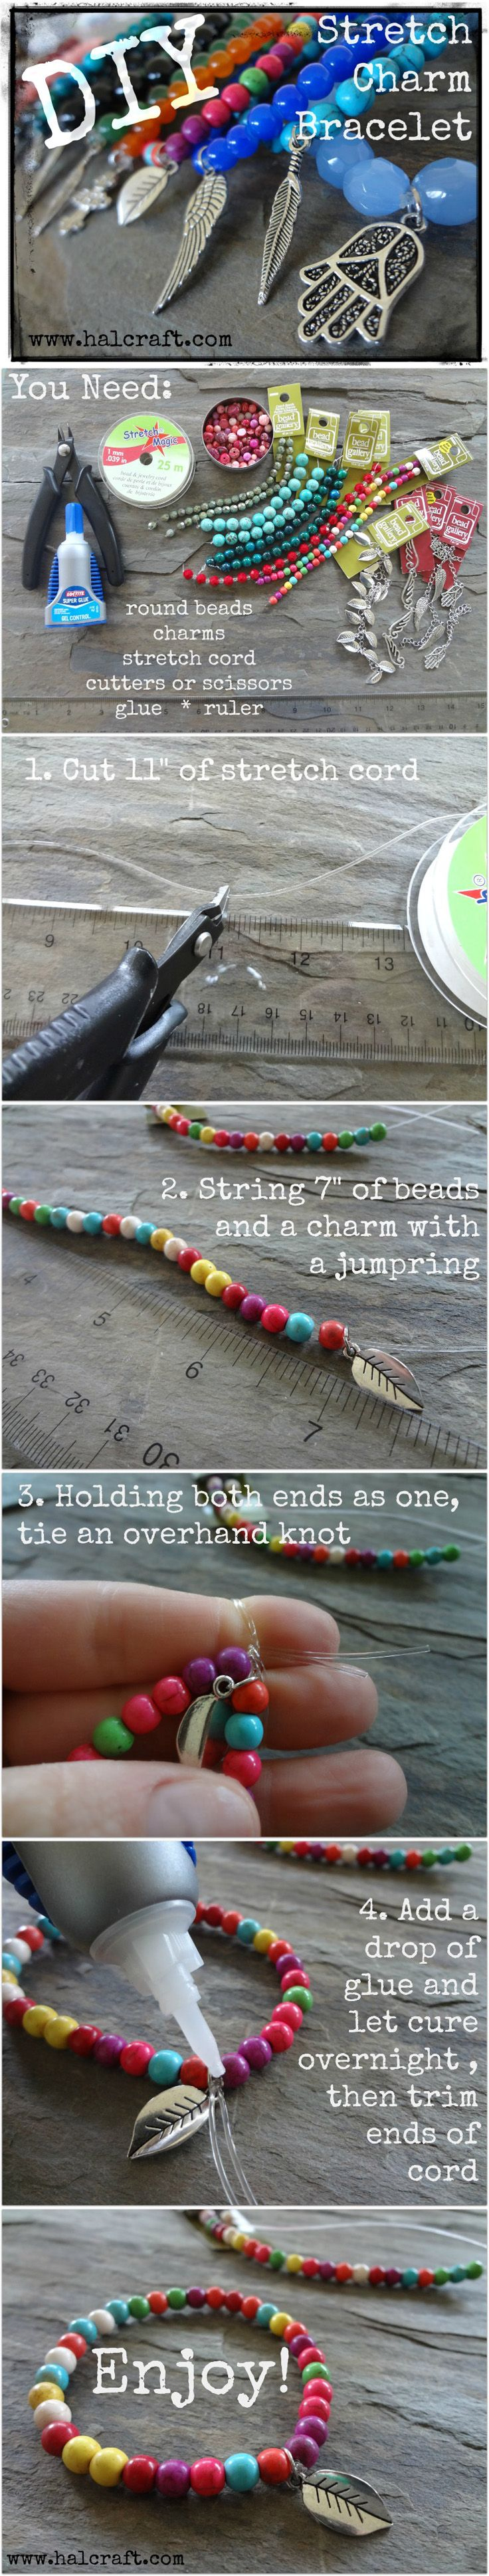 Learn How To Make Stretch Charm Bracelets And Tie A Knot That Holds With  This Photo